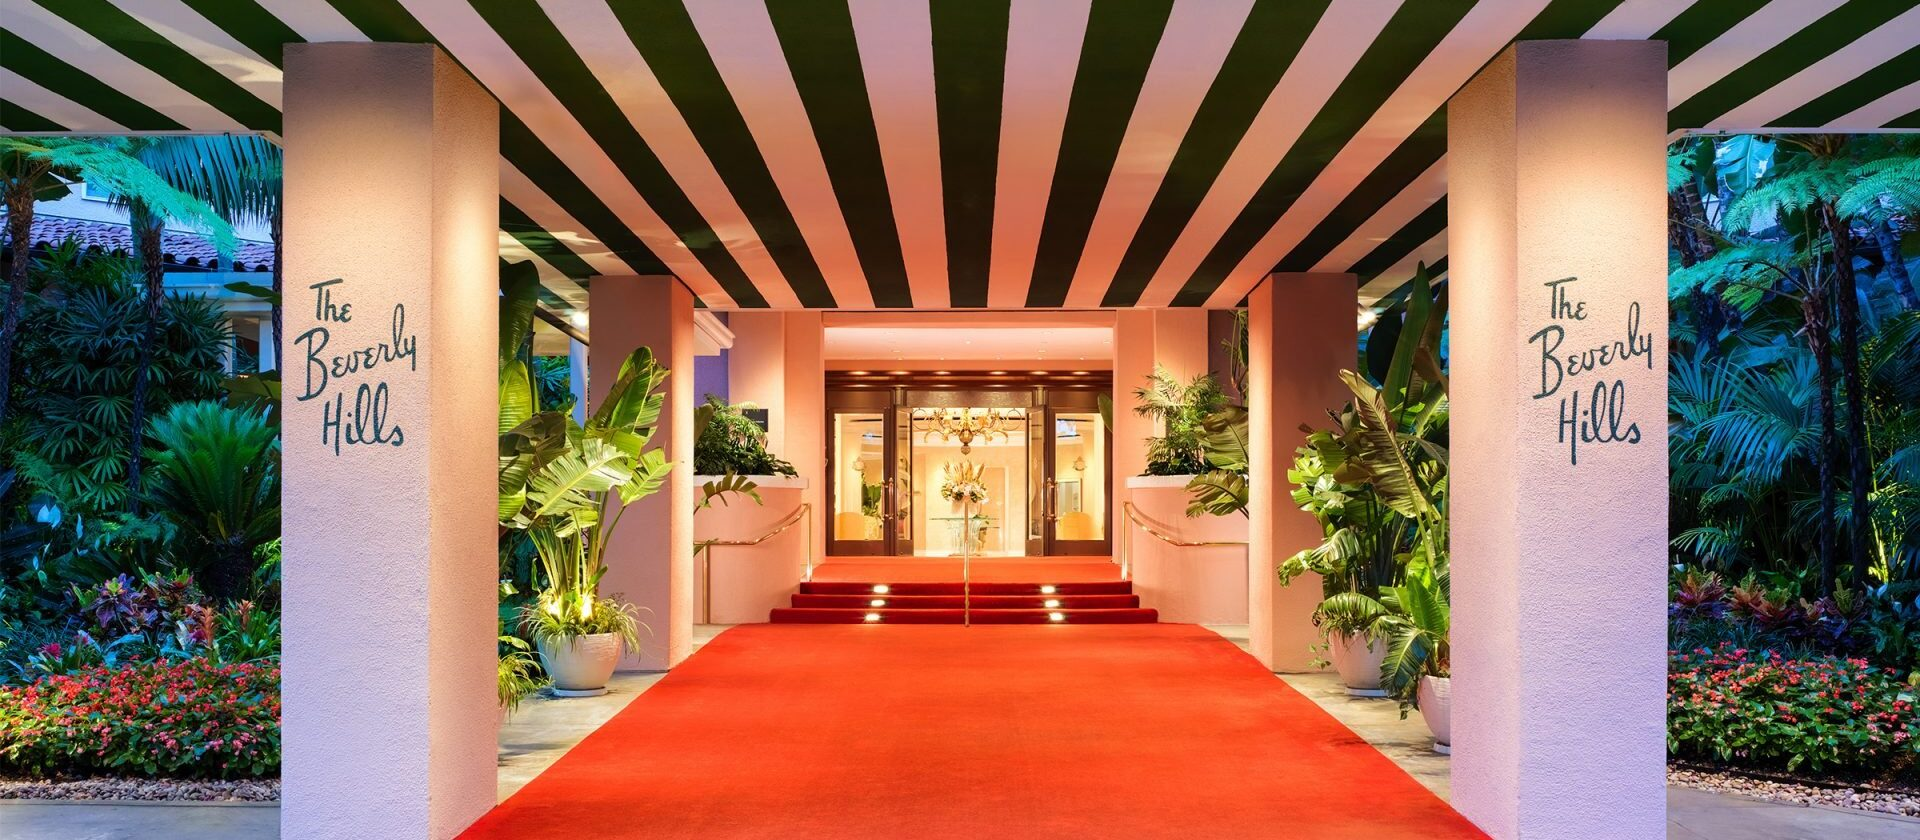 The beverly hills hotel 5 star luxury hotel dorchester collection for Garden suite hotel los angeles